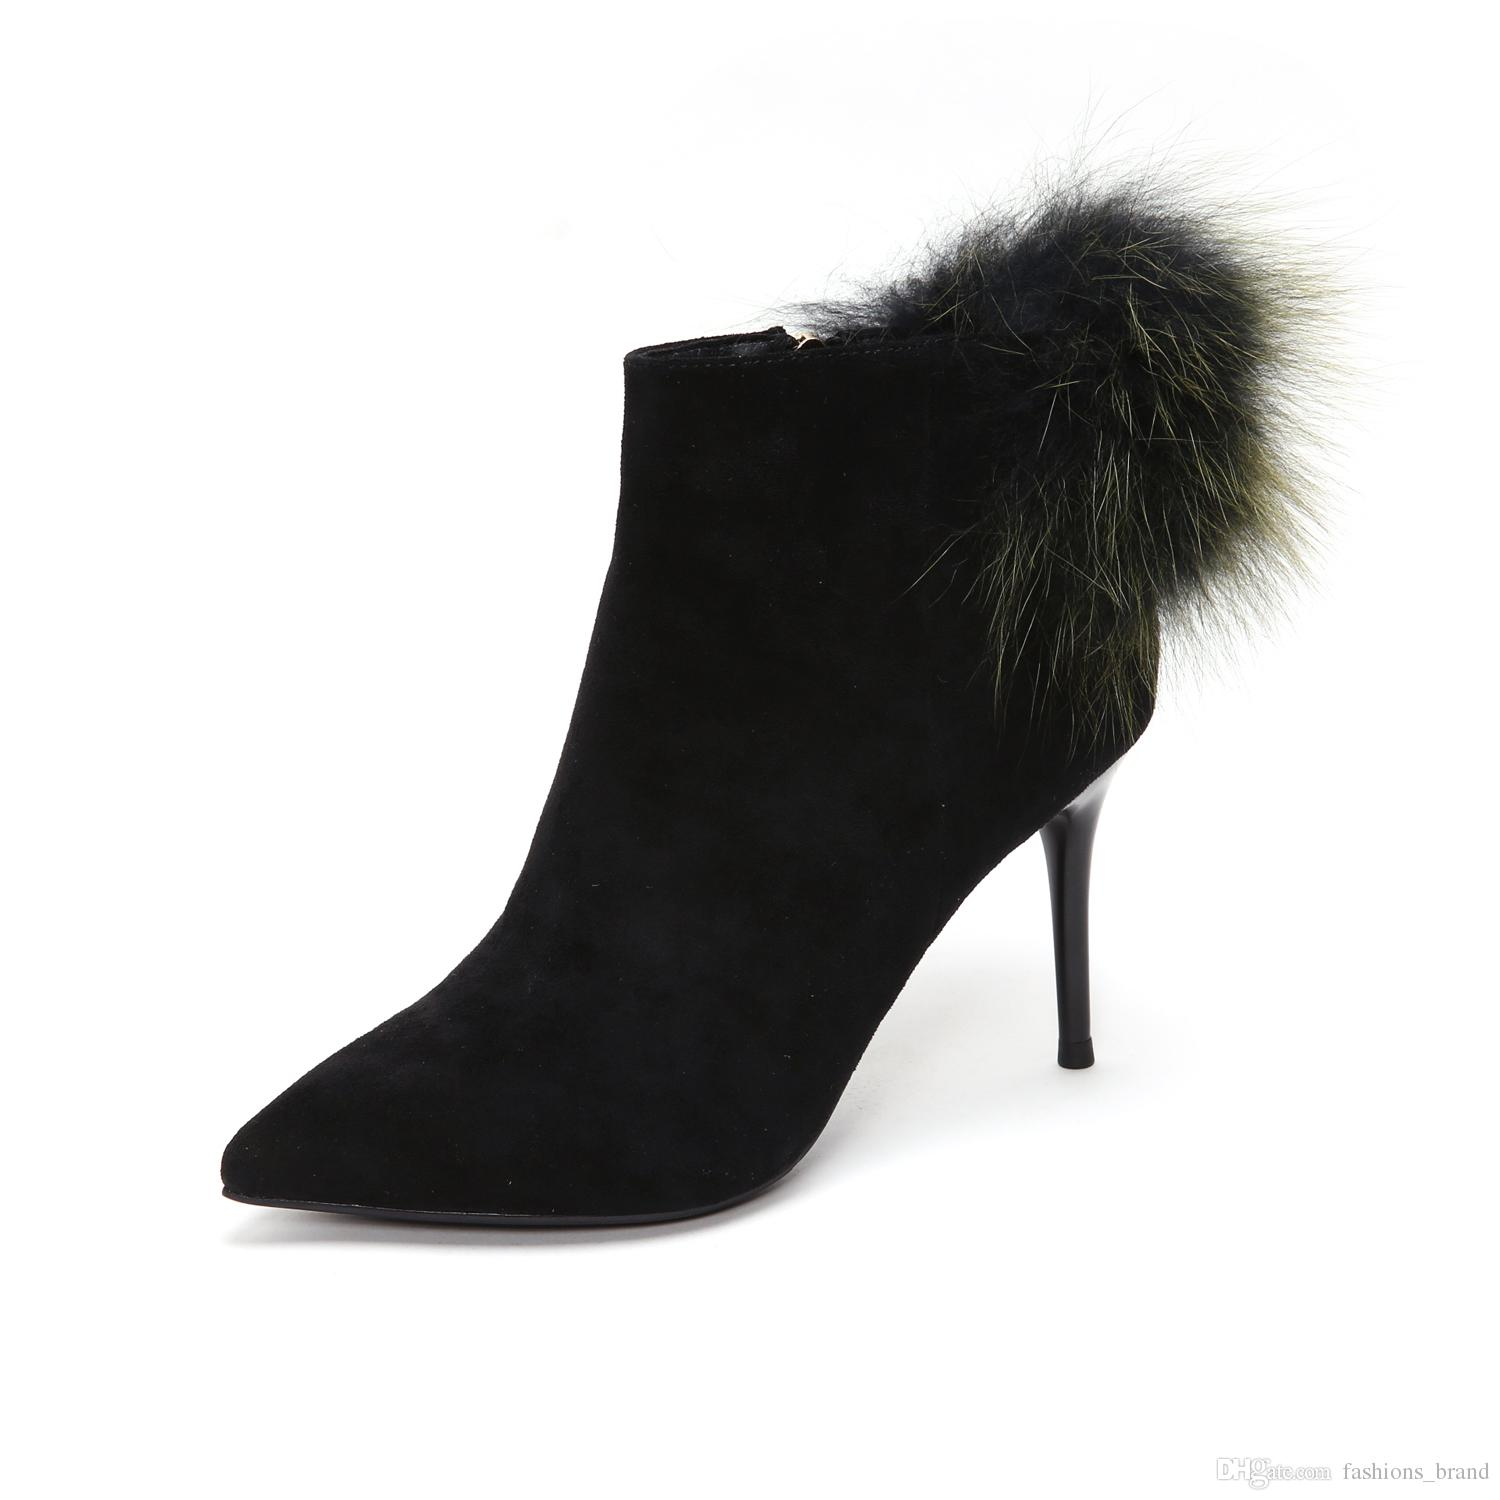 2e84c50bcf4e New Winter Pointed Toe Ankle Boots For Women Luxury Velvet Stiletto Heel  Hair Ball Side Zipper Pompoms Women Booties Suede Boots Men Boots From ...